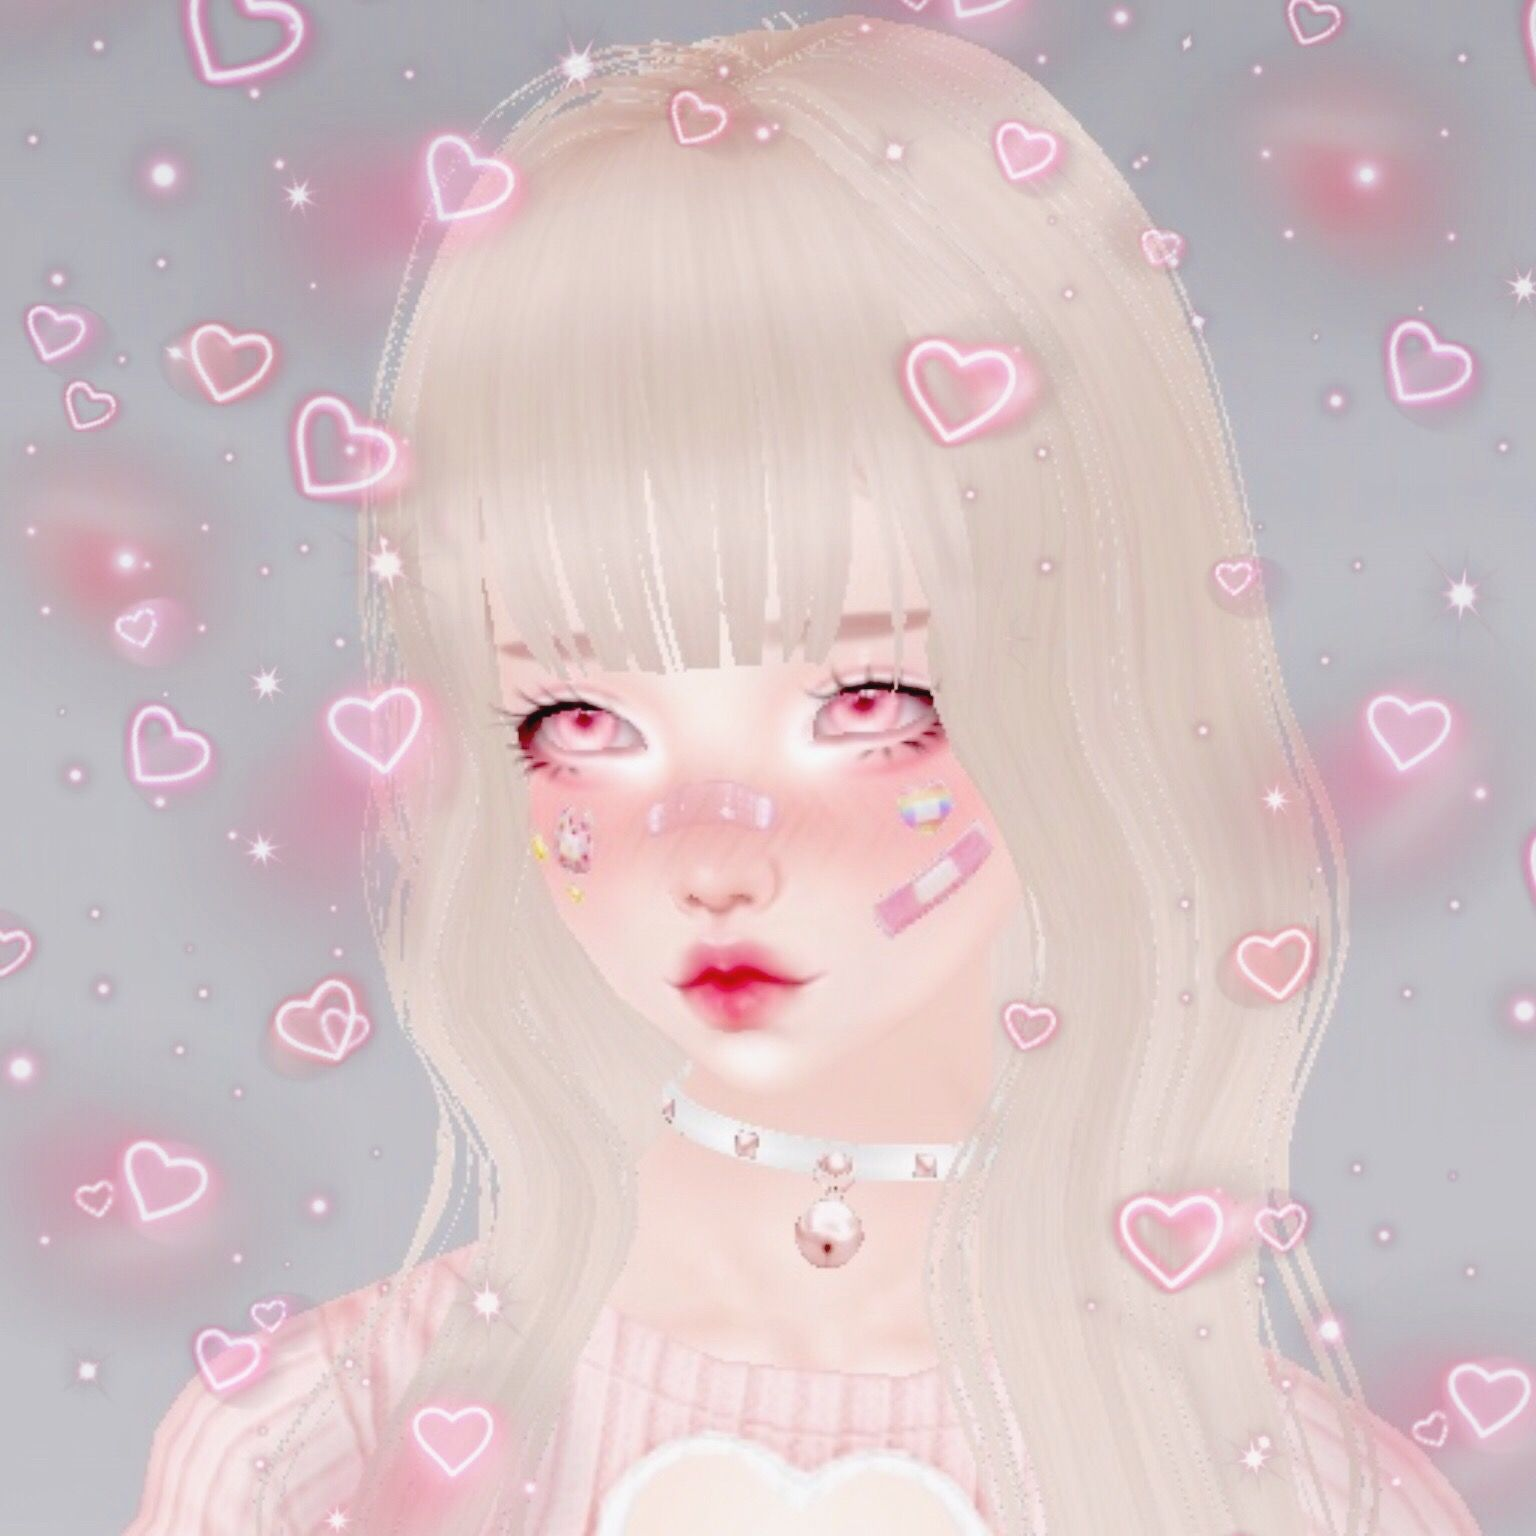 Pin by Cuppiecake Williams on Imvu Aesthetic anime